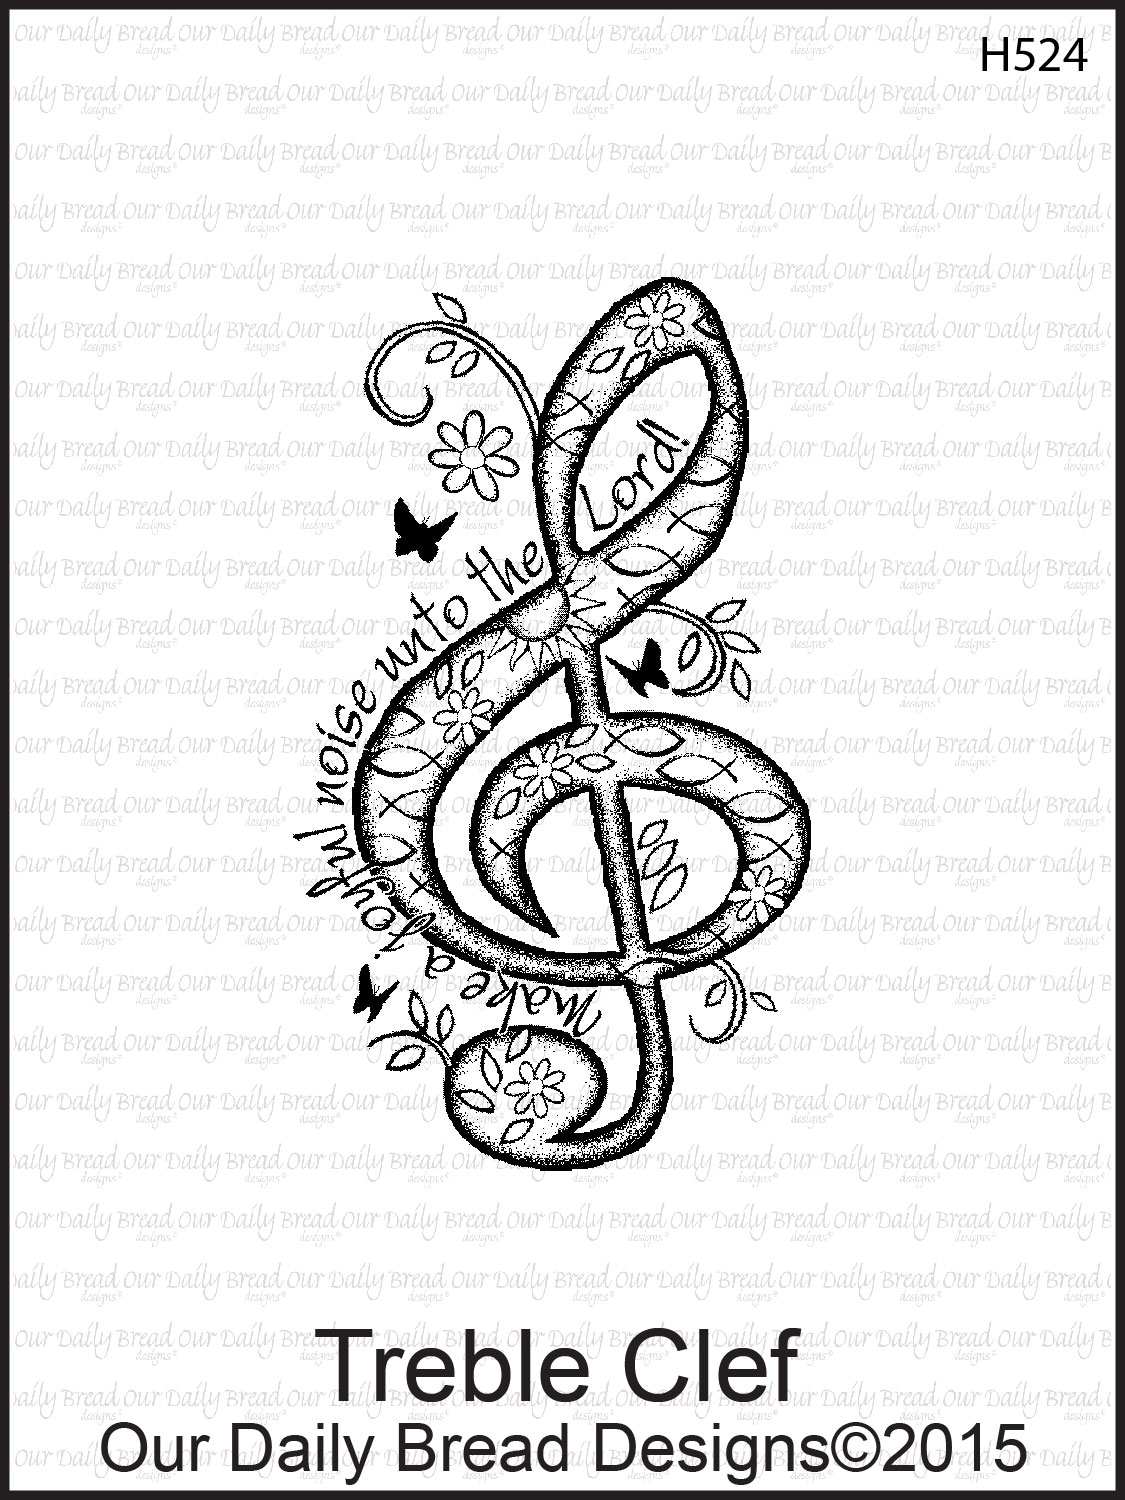 Stamps - Our Daily Bread Designs Treble Clef